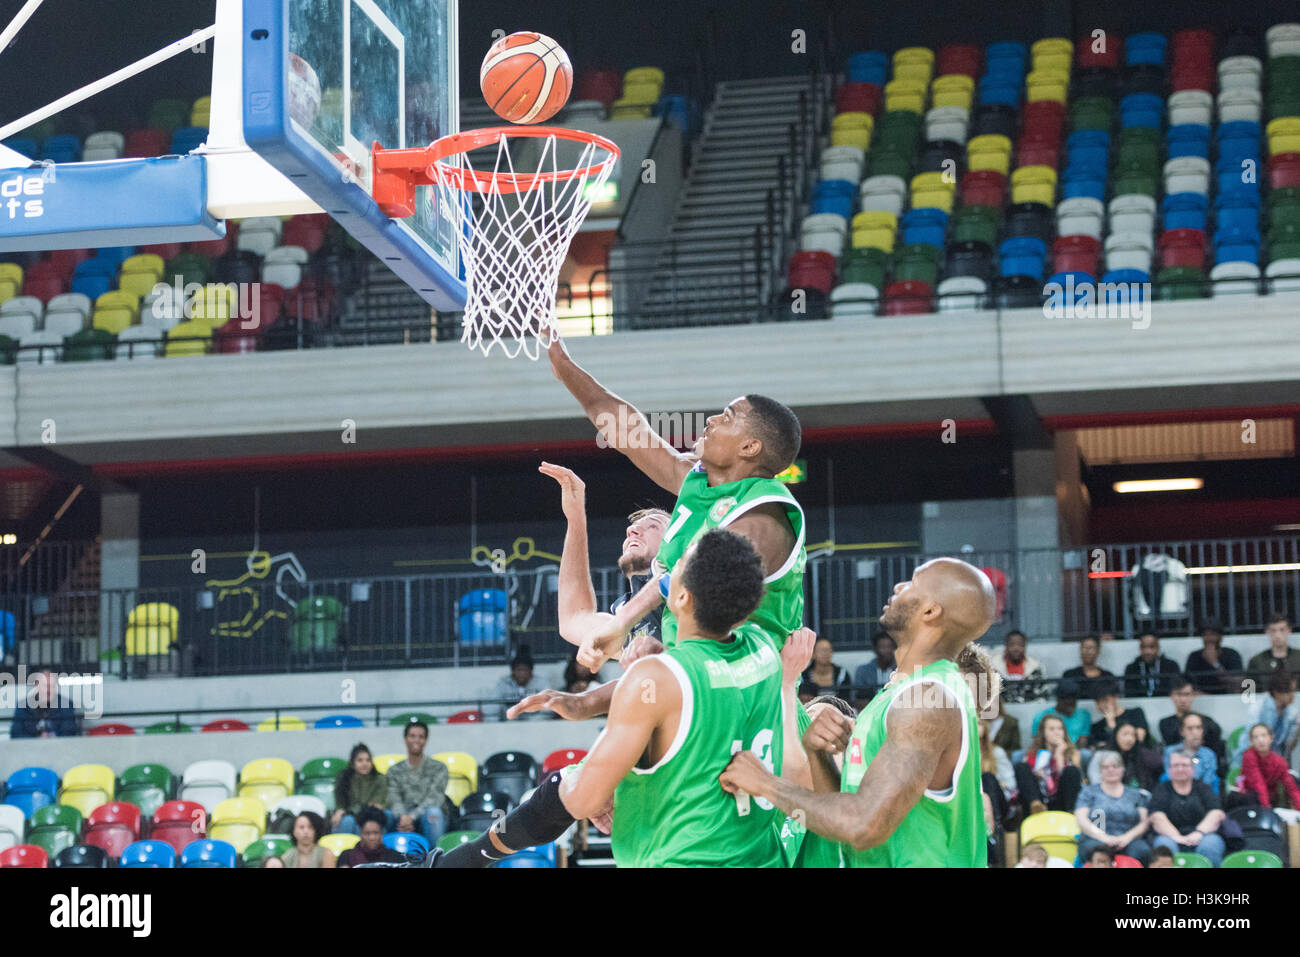 London, UK, 9 October 2016. London Lions beat Plymouth Raiders 105 vs 79 in the BBL cup game. Plymouth Raiders  - Stock Image